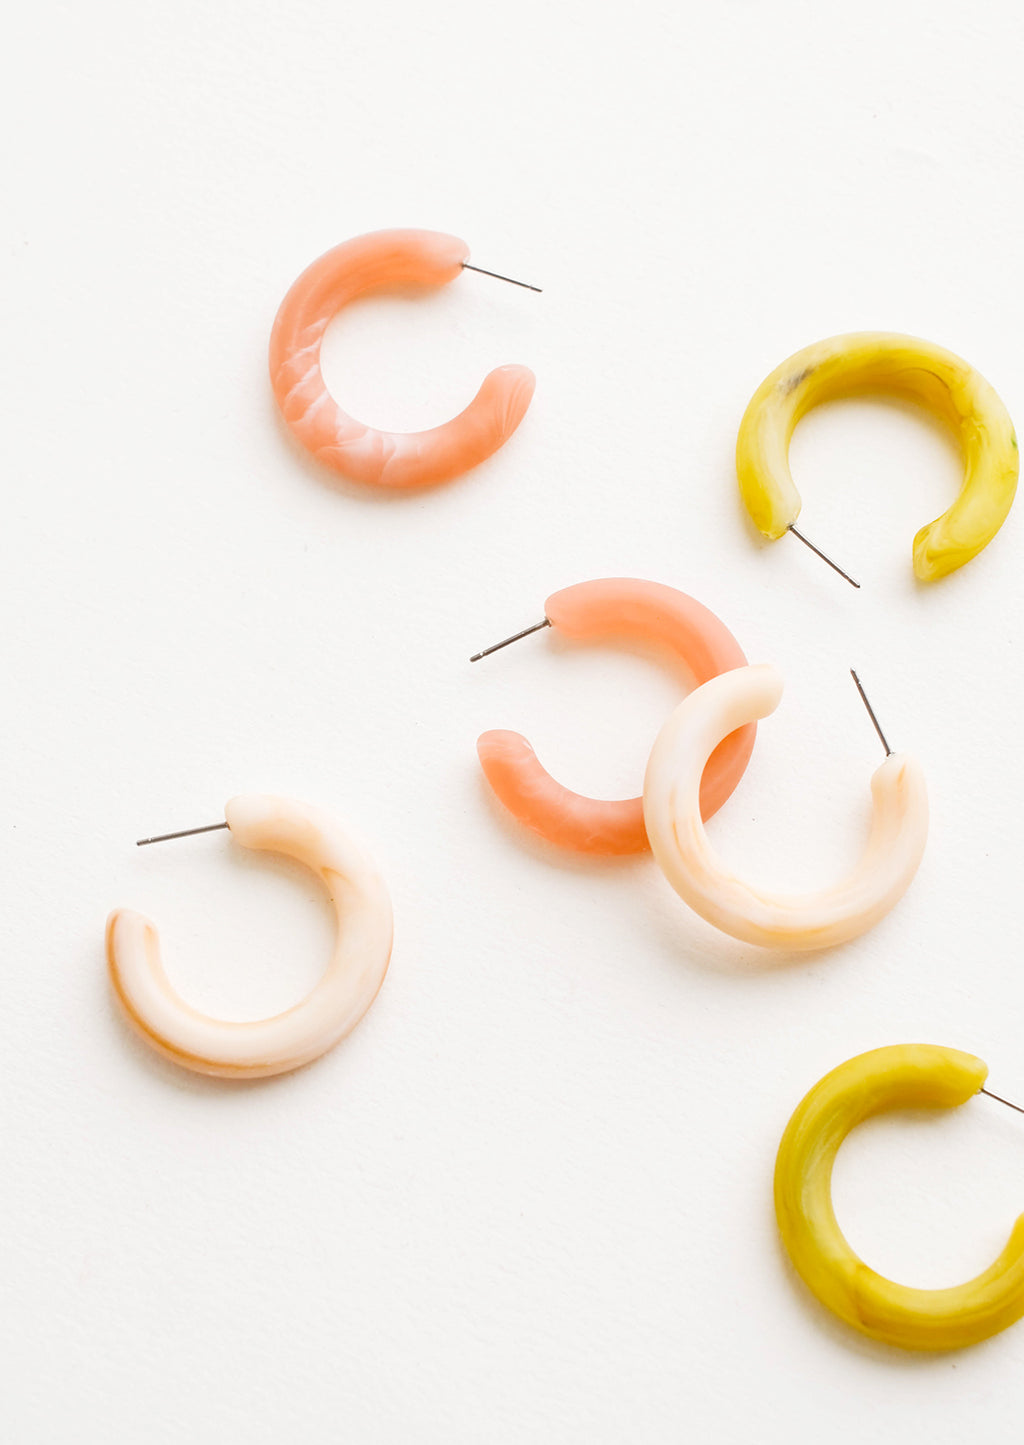 1: Scattered array of different colored hoop earrings in matte resin